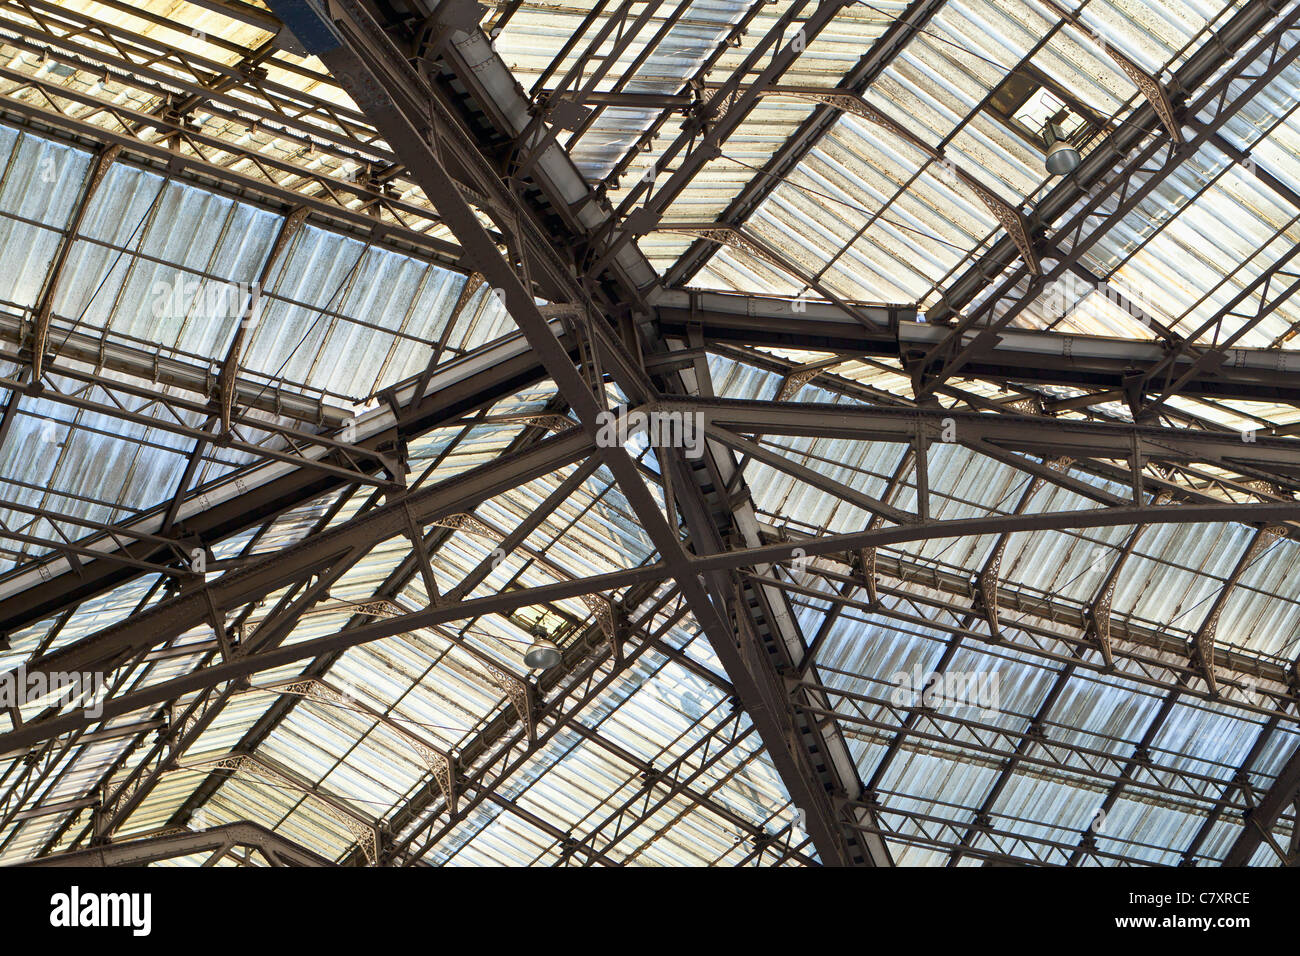 Glass roof at Liverpool Street station, London, UK - Stock Image